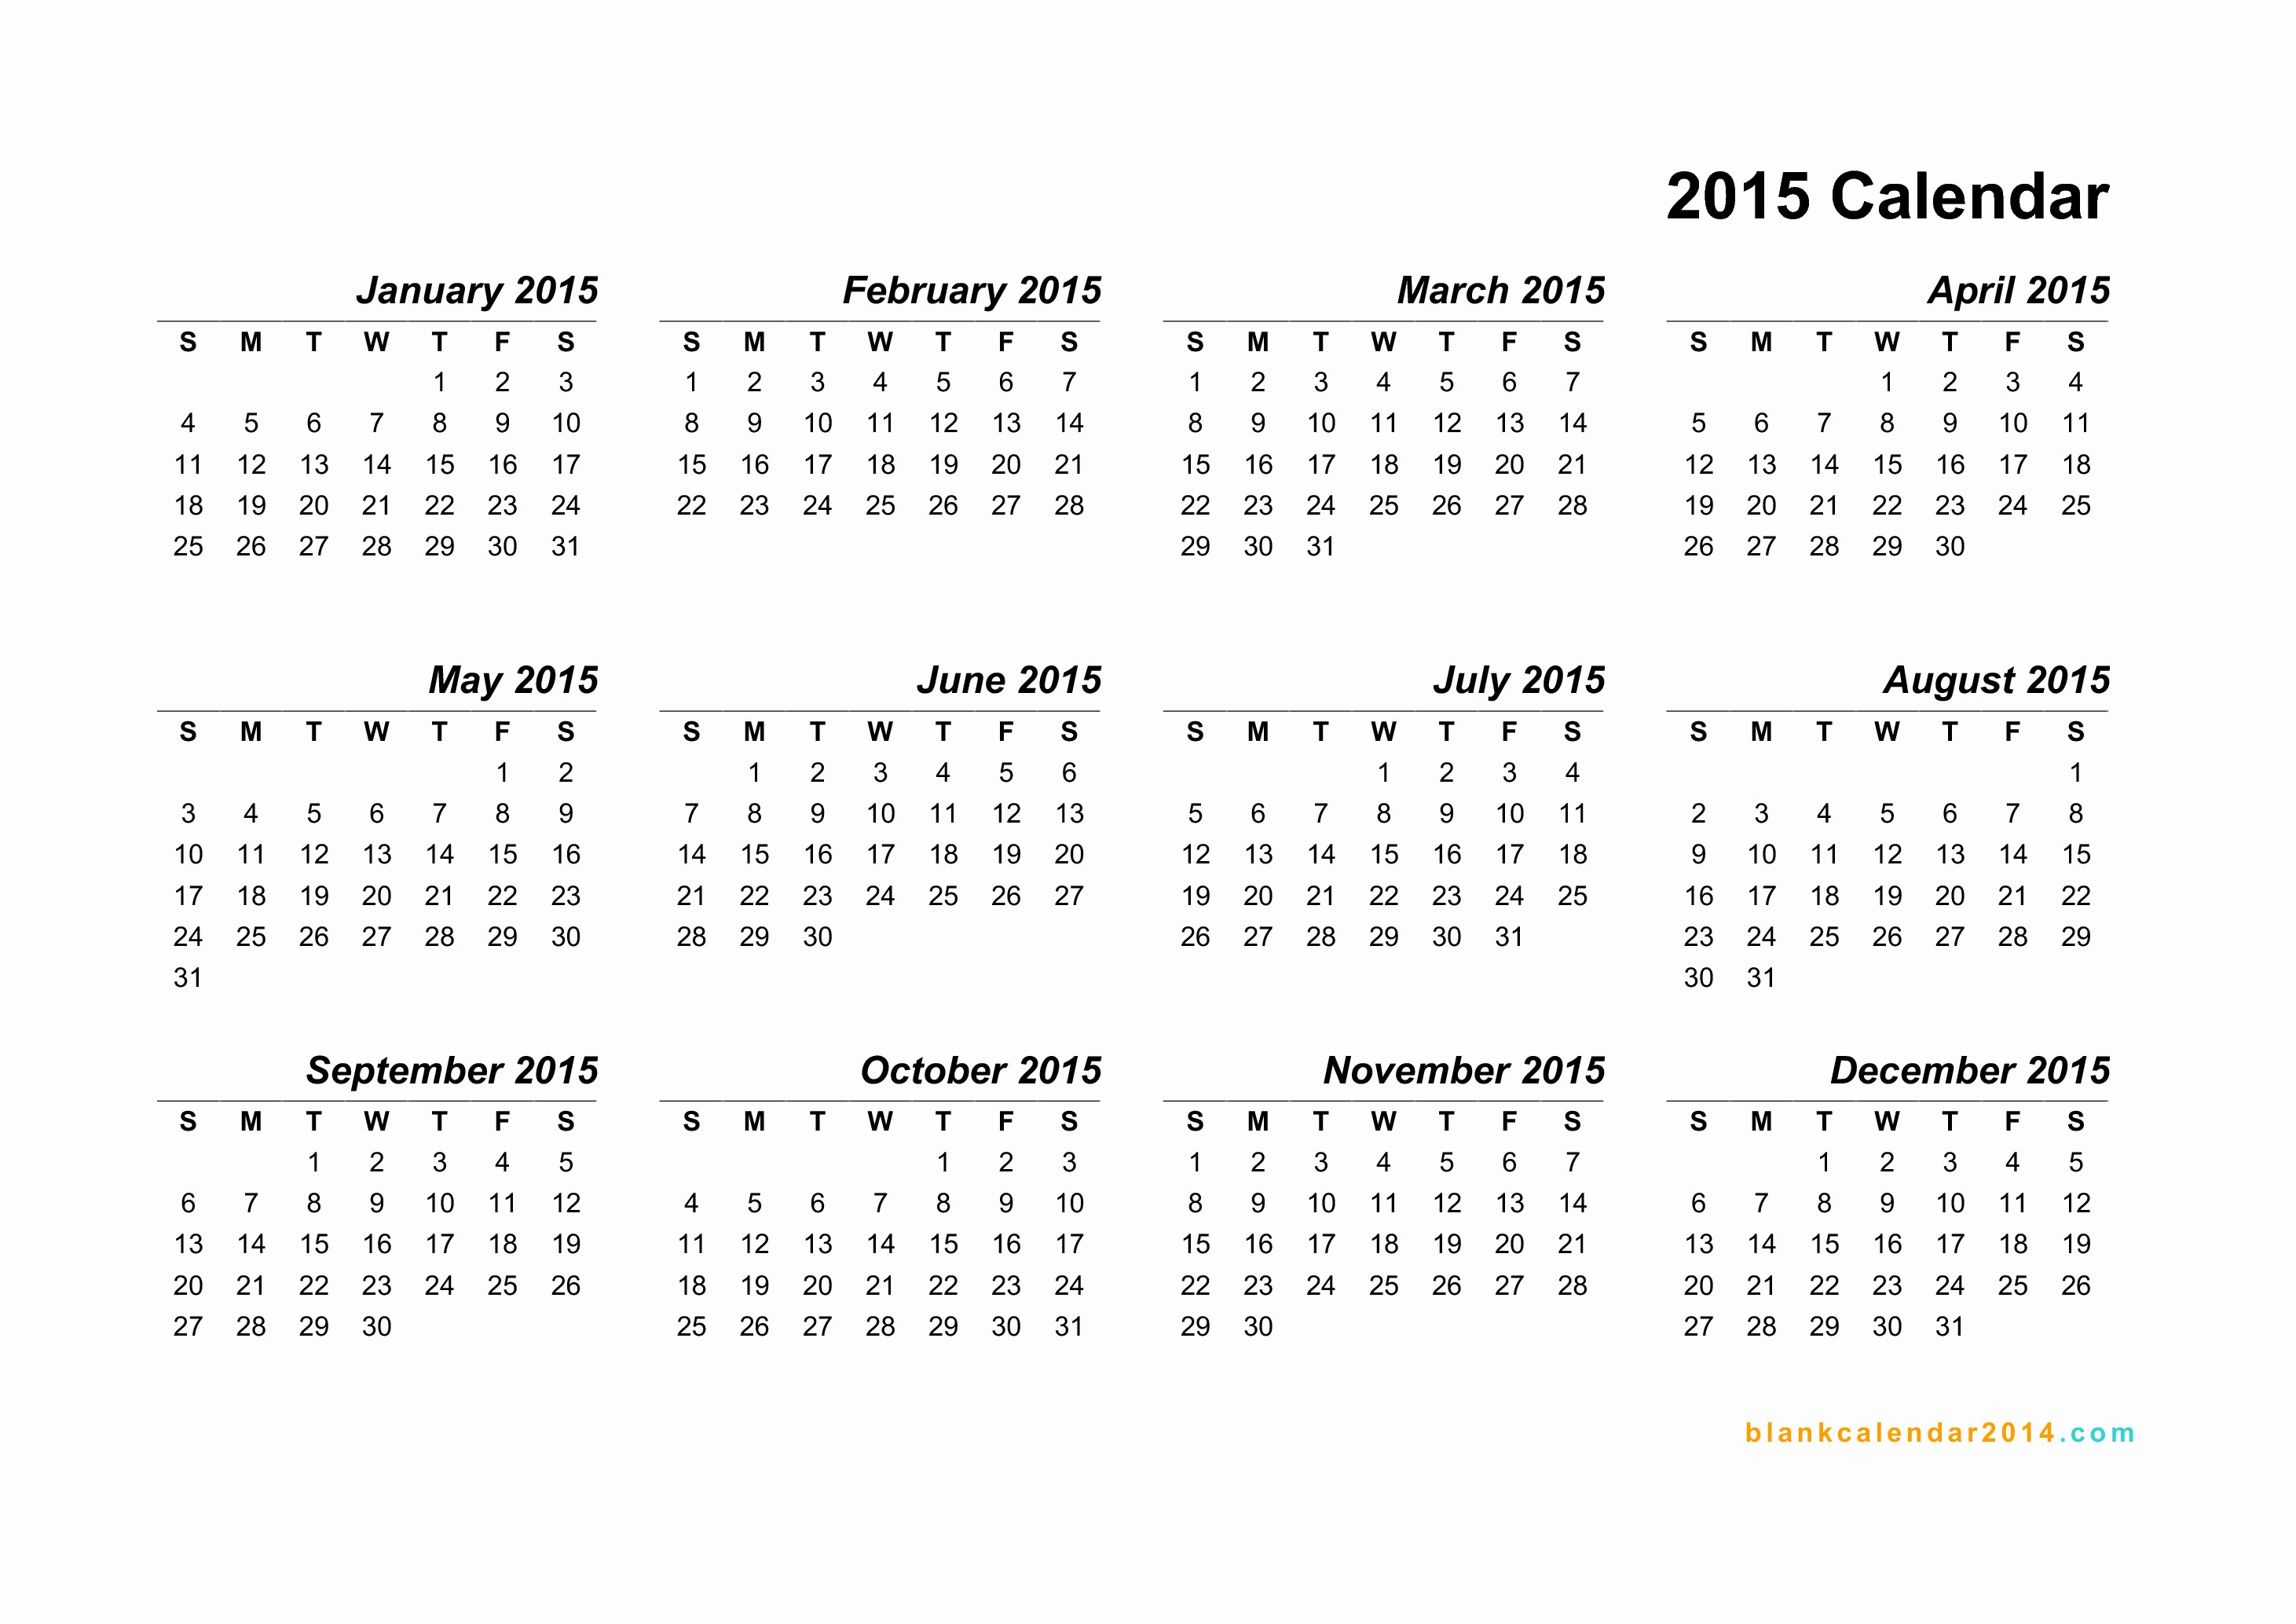 Free Yearly Calendar Templates 2015 Elegant 12 2015 Yearly Calendar Template 2015 Calendar